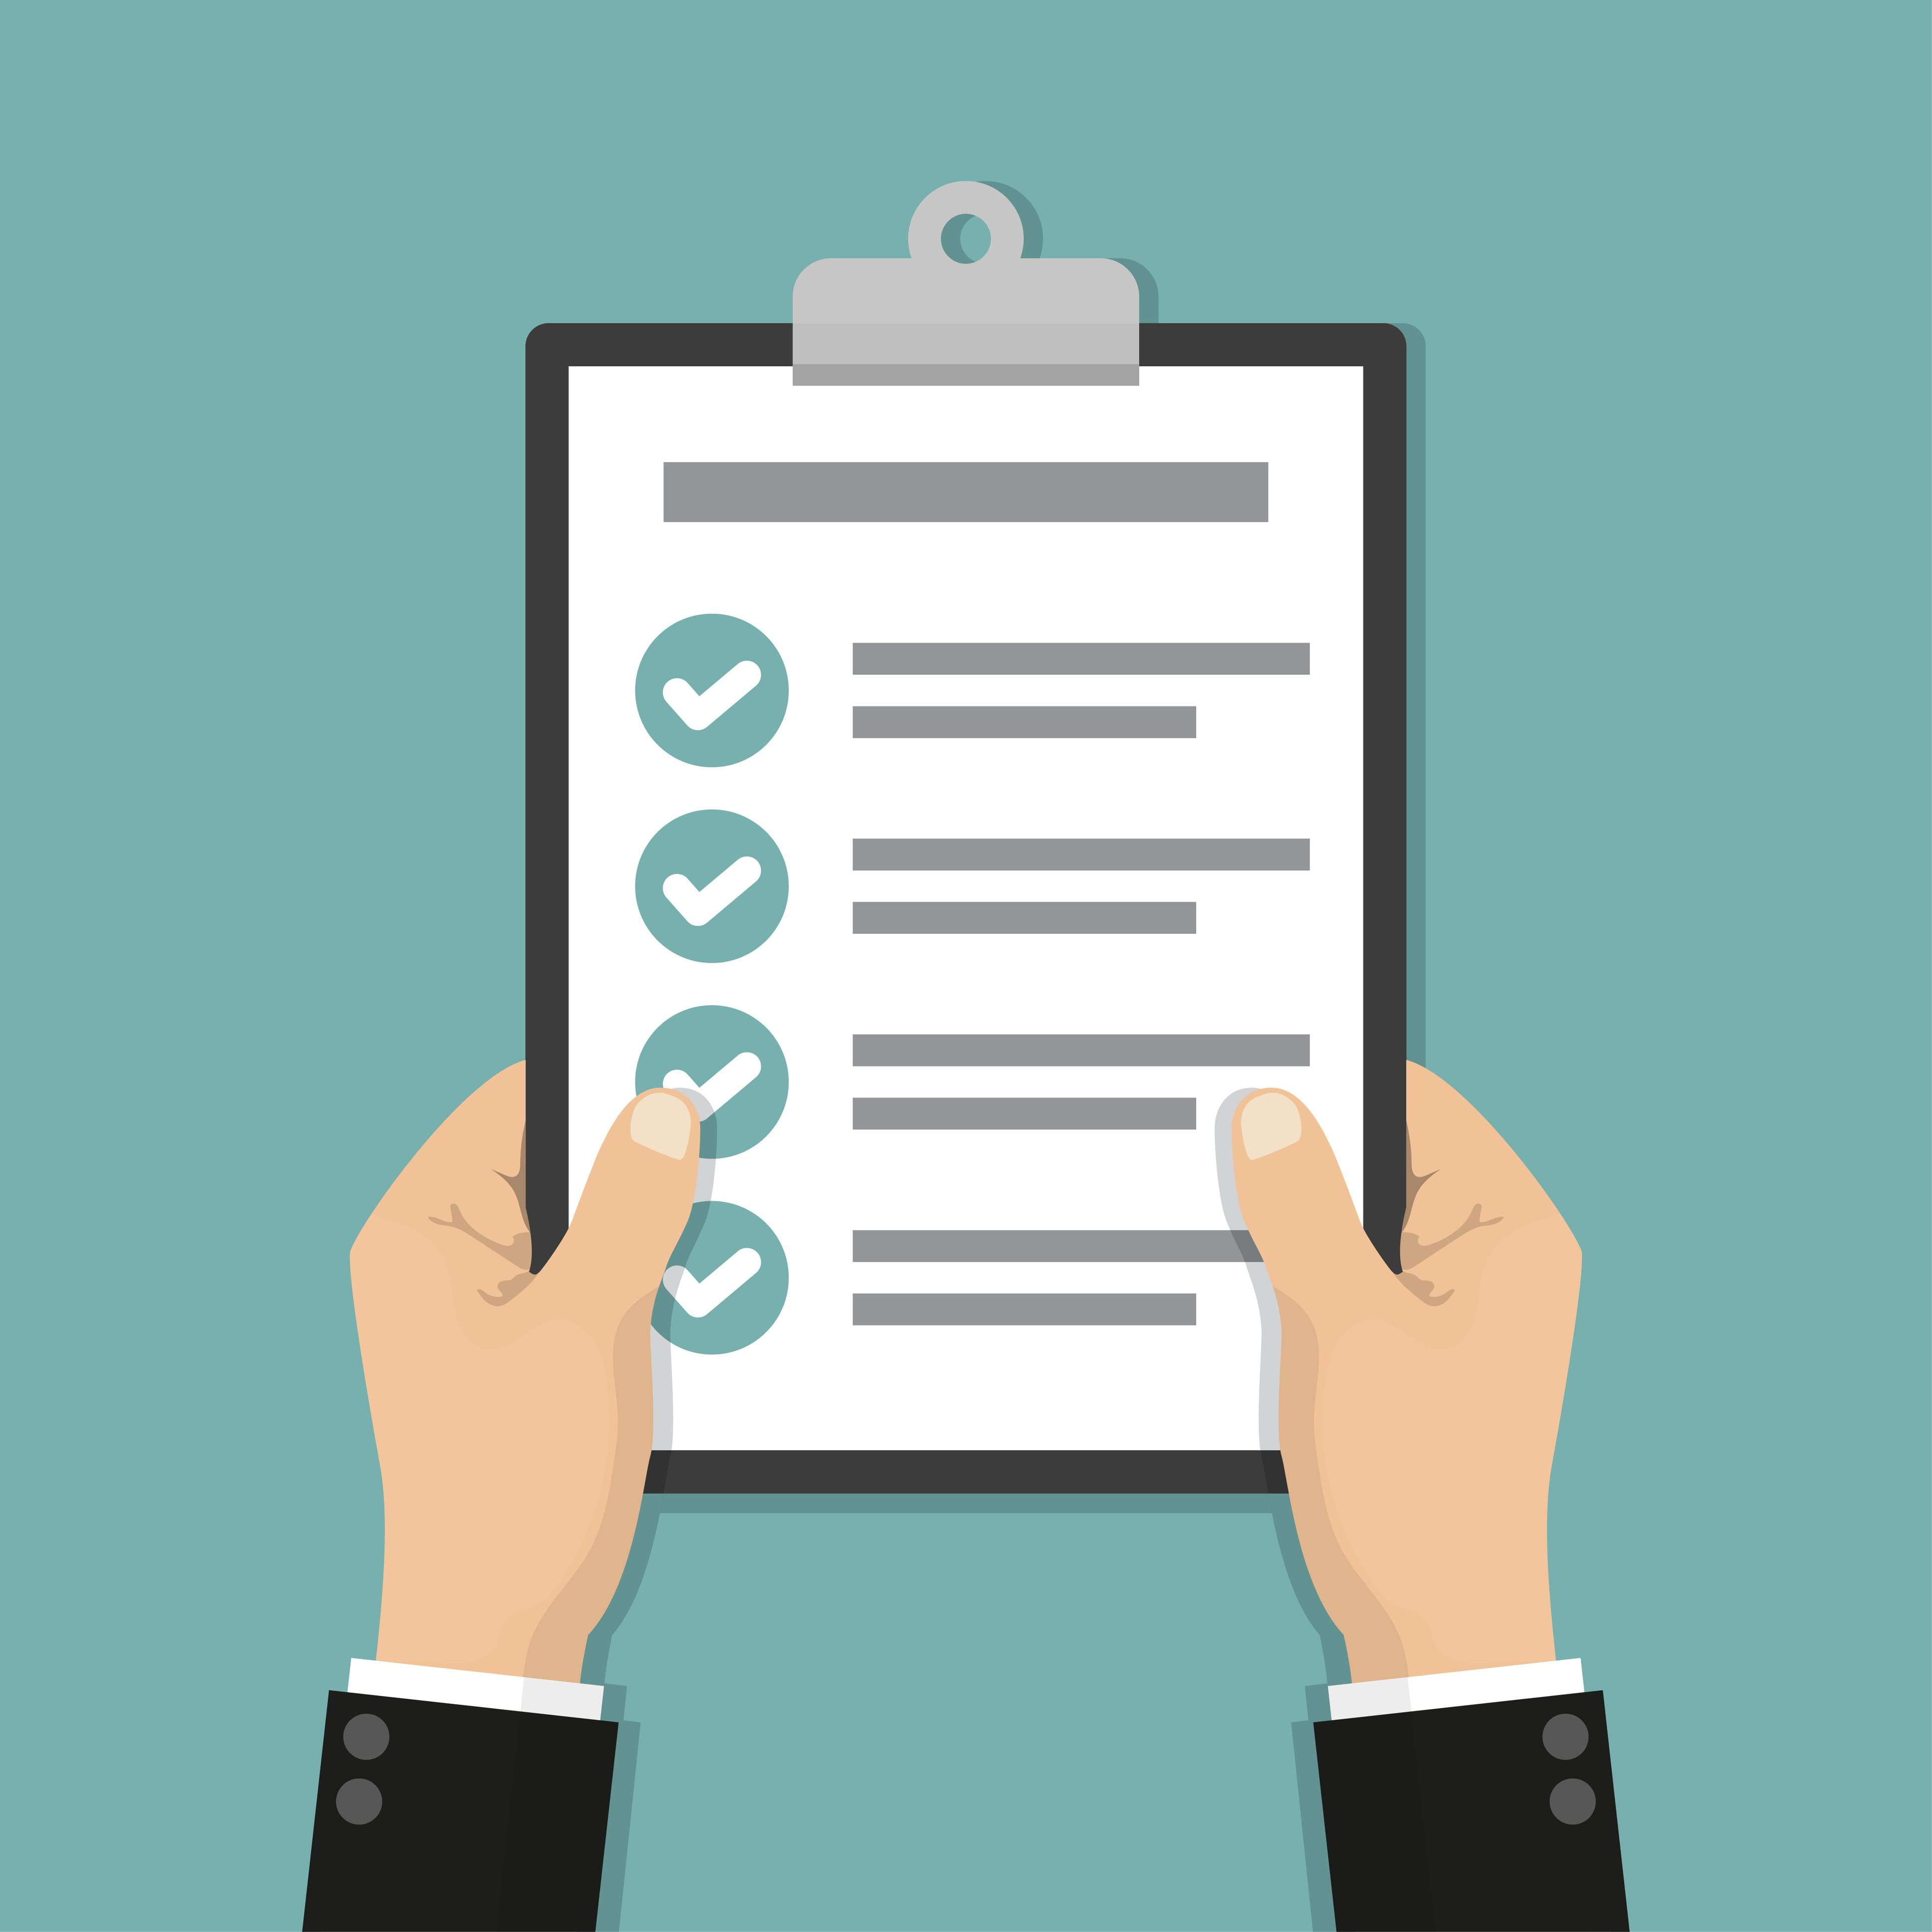 7 Work Order Audits You Should be Doing